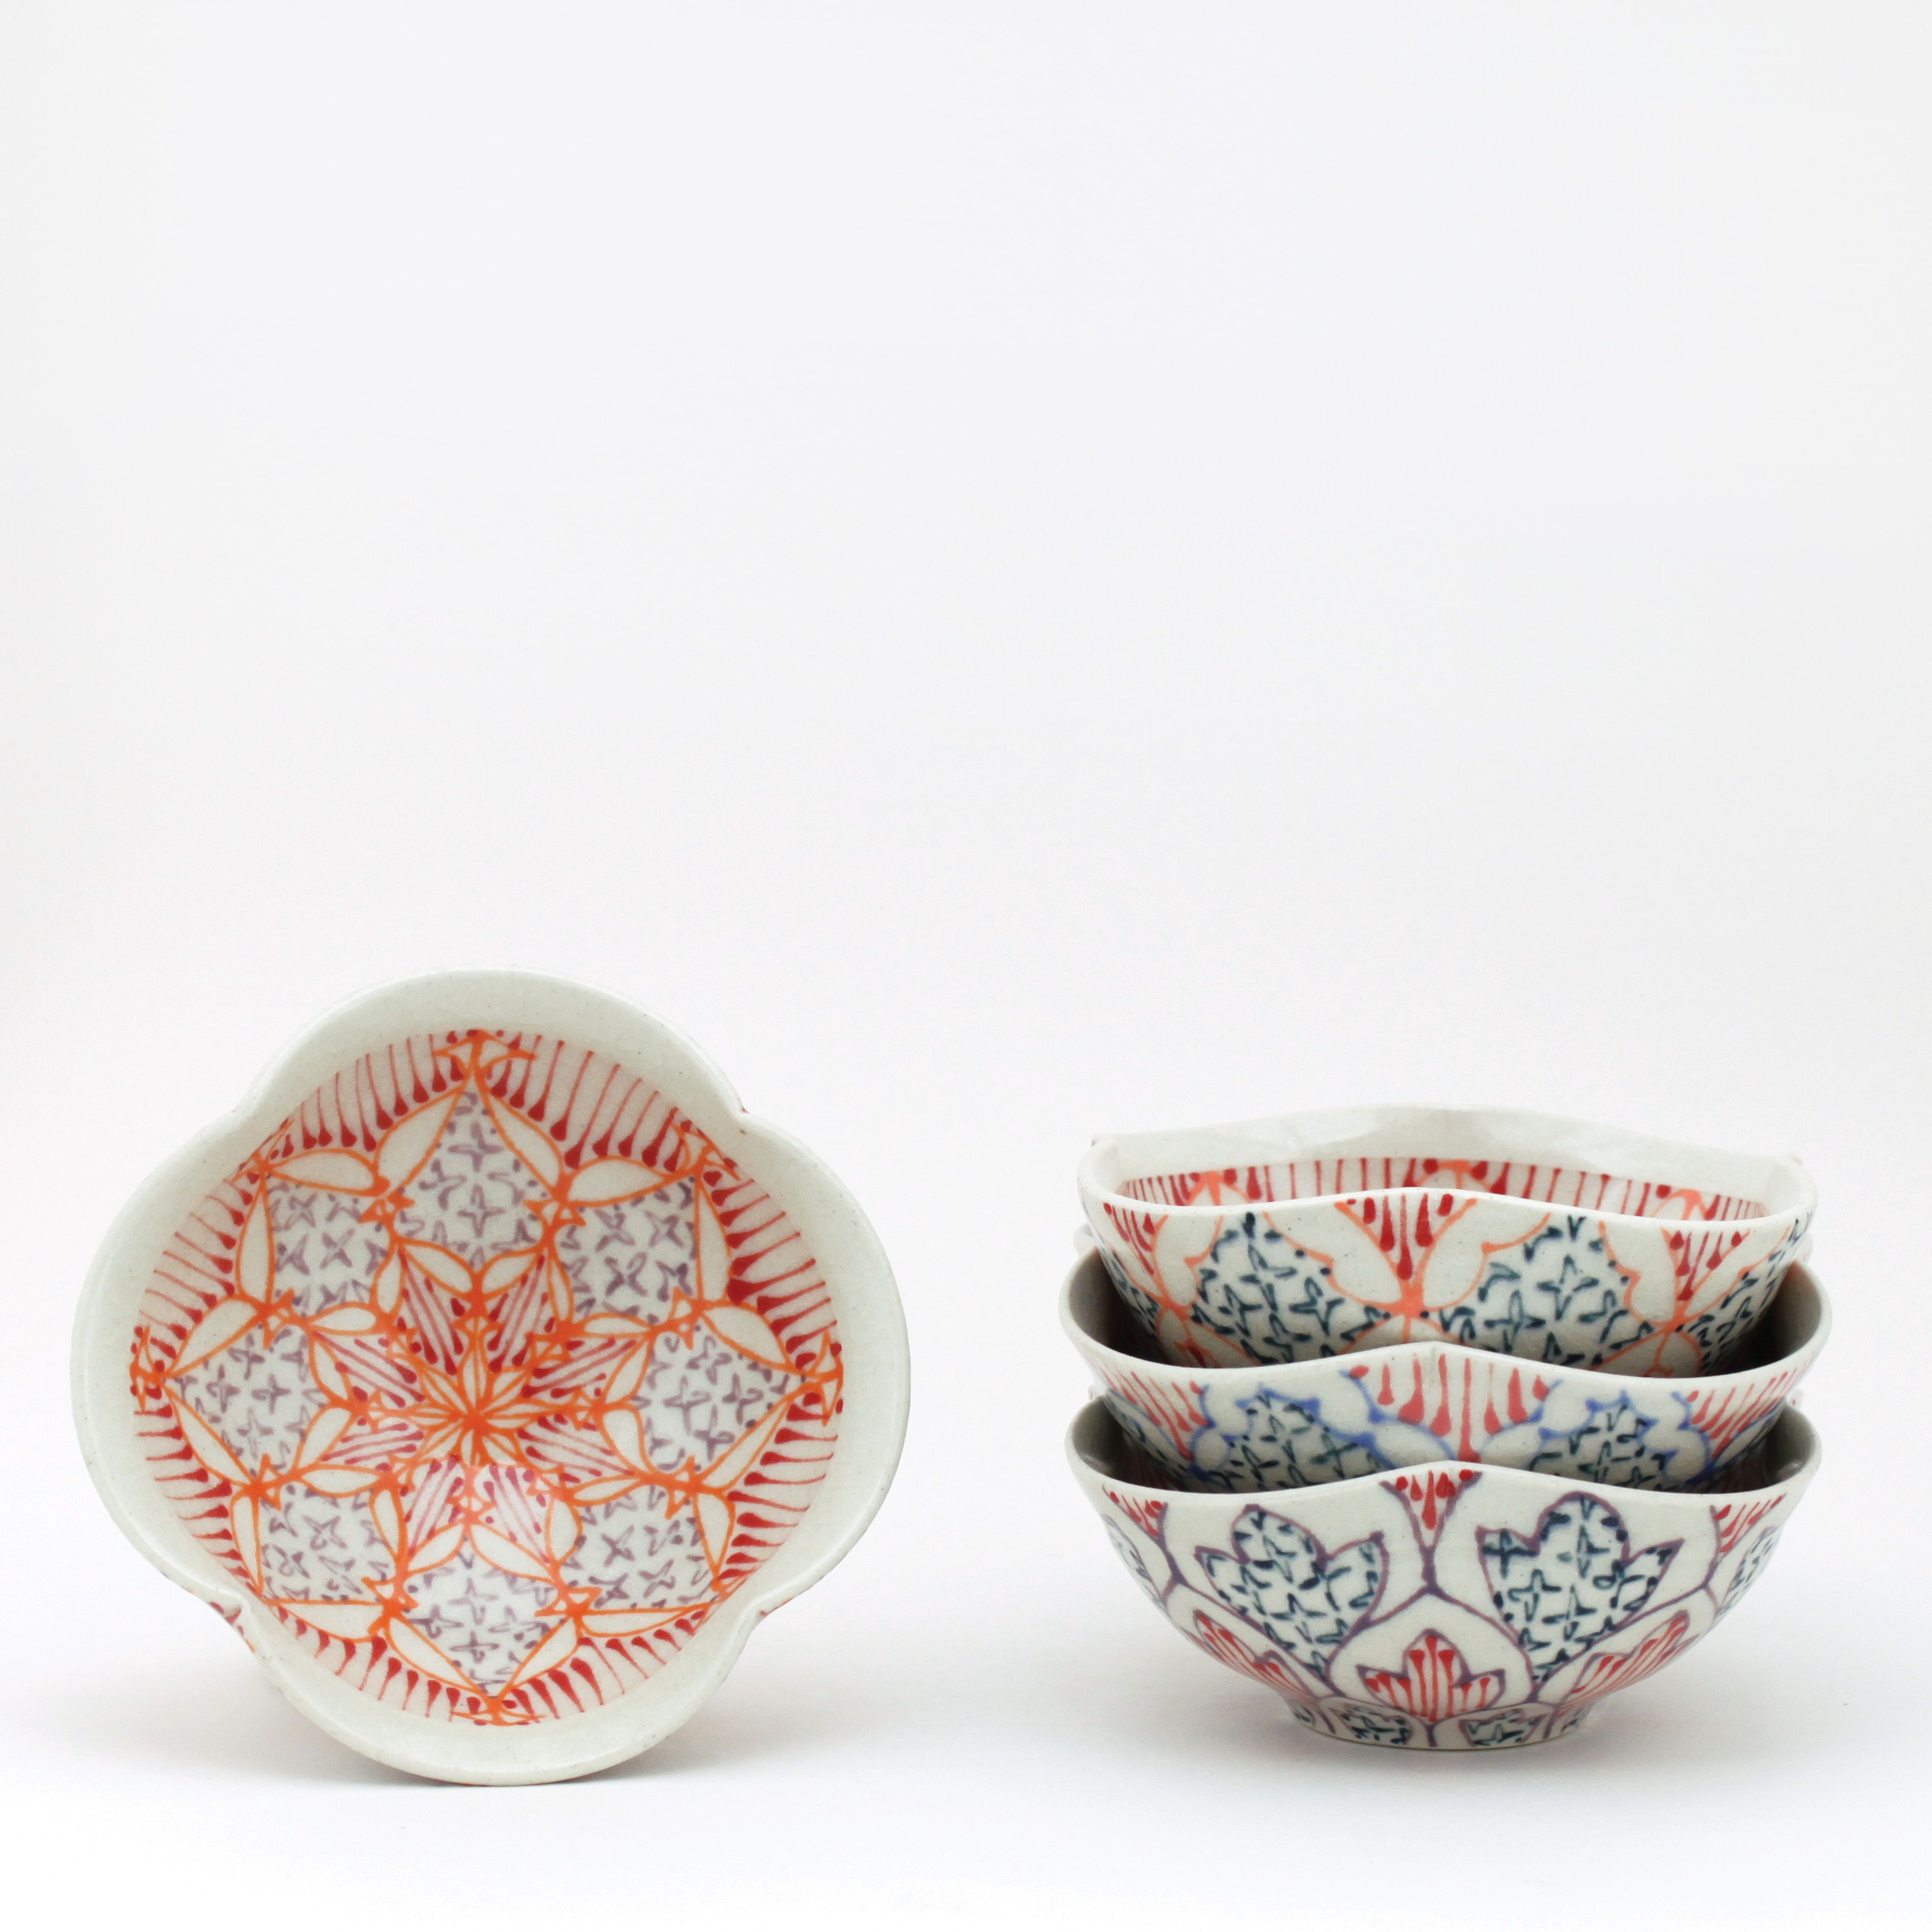 Dawn Dishaw S Bowls Featured In The May 2014 Issue Of Ceramics Monthly Ceramics Monthly Ceramics Ceramic Art